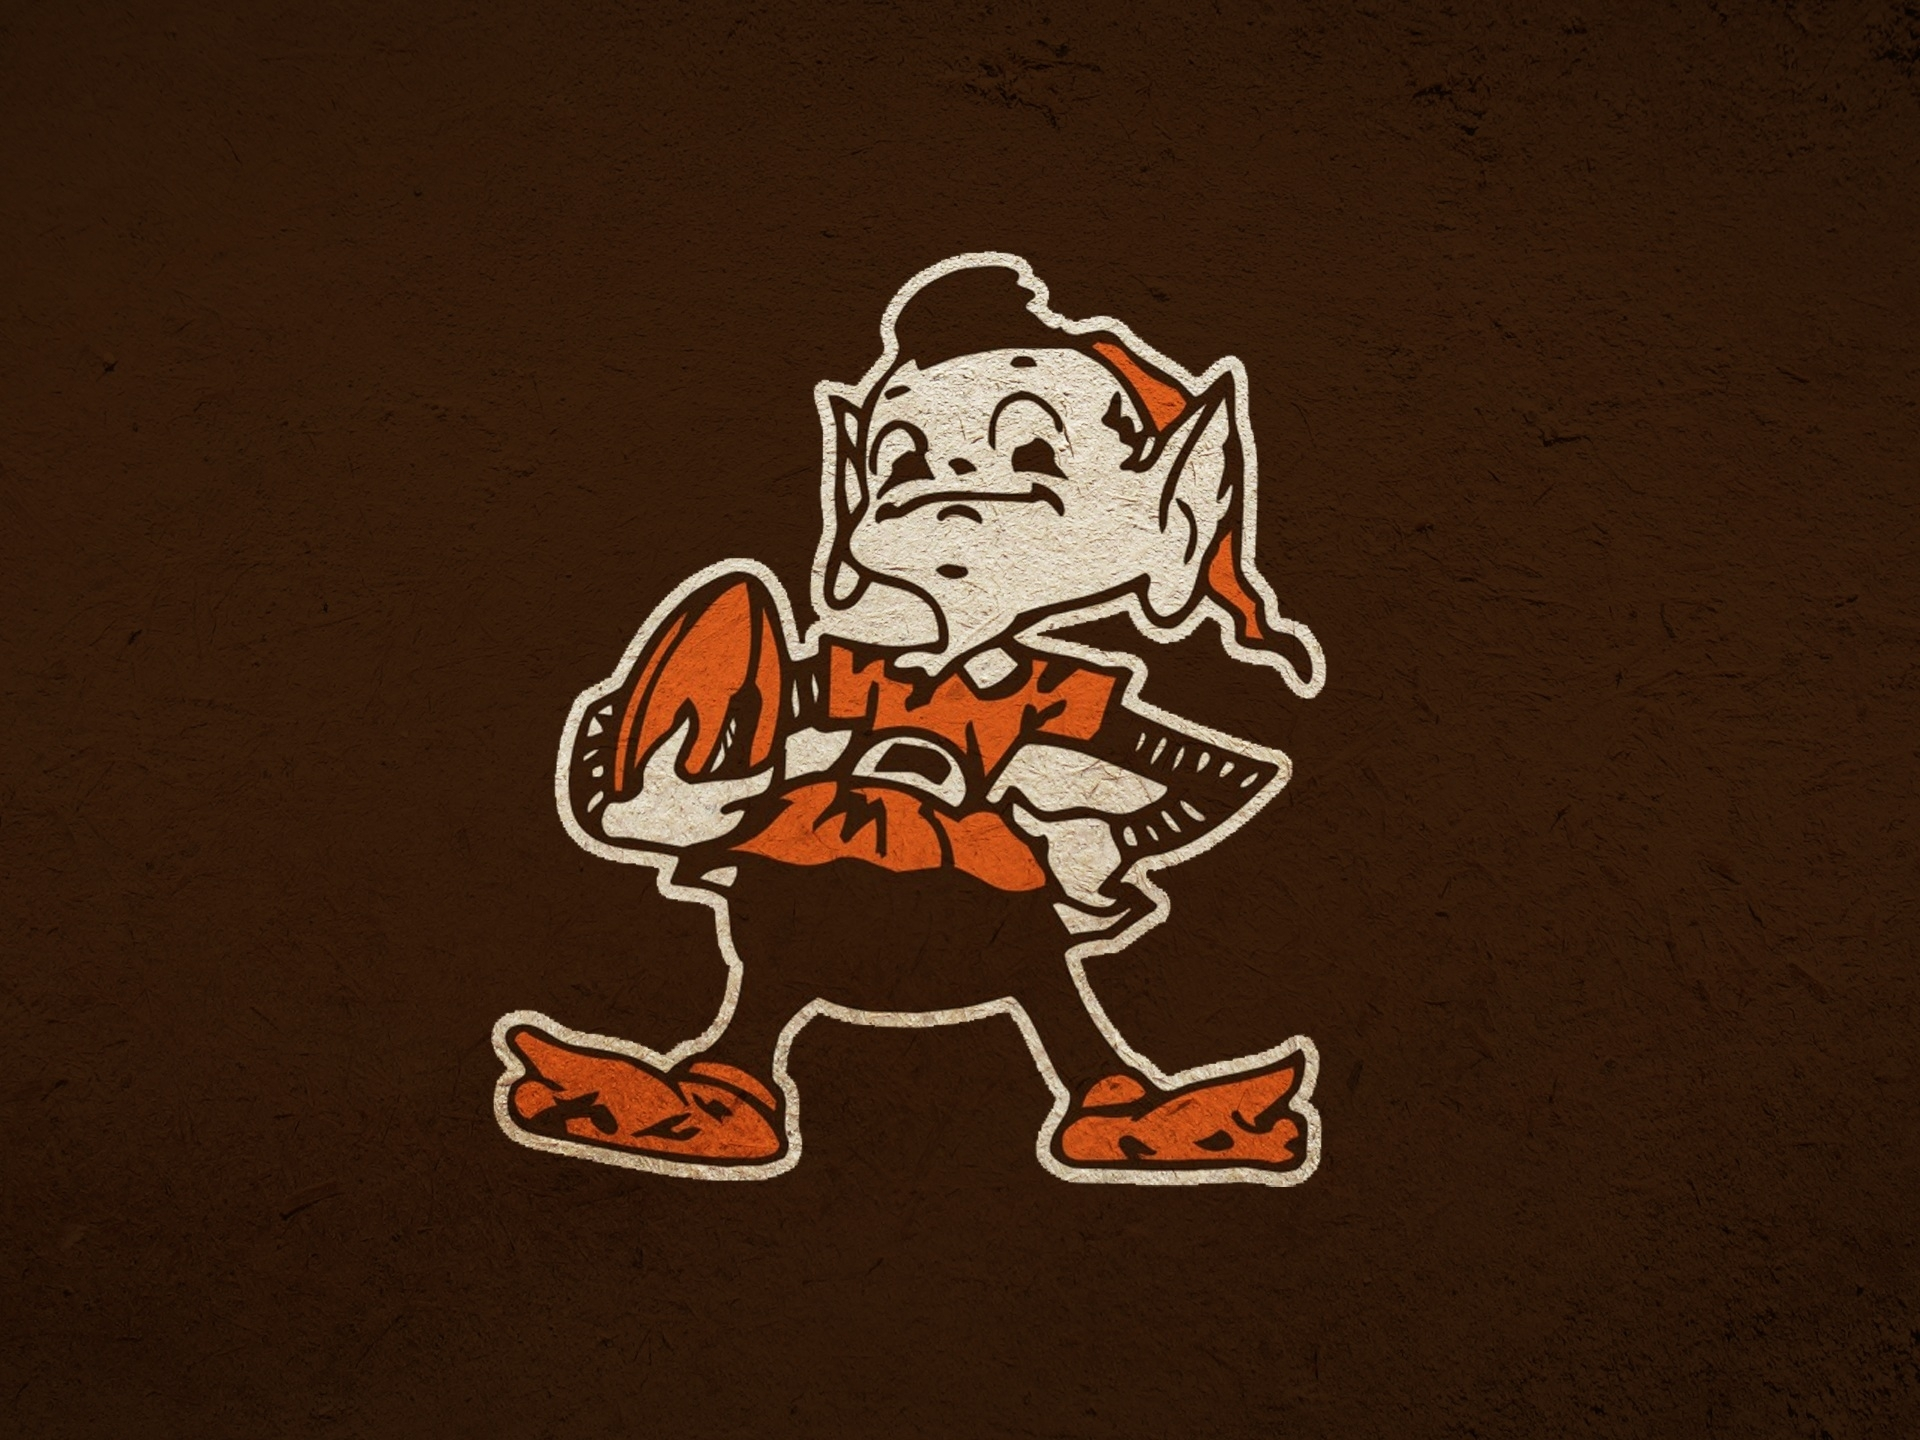 10 Top Cleveland Browns Hd Wallpaper FULL HD 1920×1080 For ...